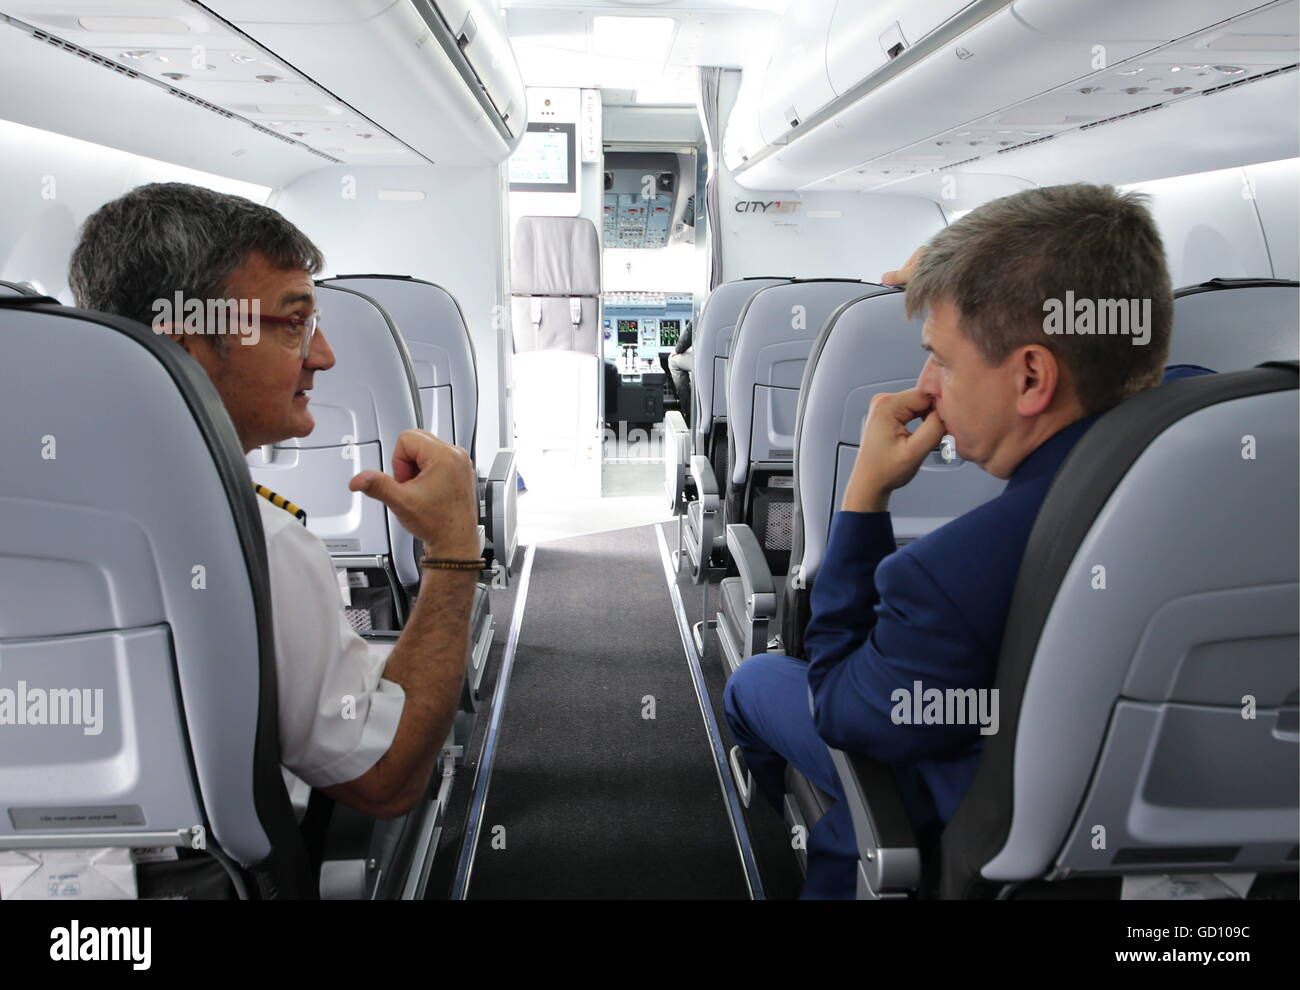 Farnborough, United Kingdom. 11th July, 2016. People in the cabin of a Sukhoi Superjet 100 of the Irish airline - Stock Image